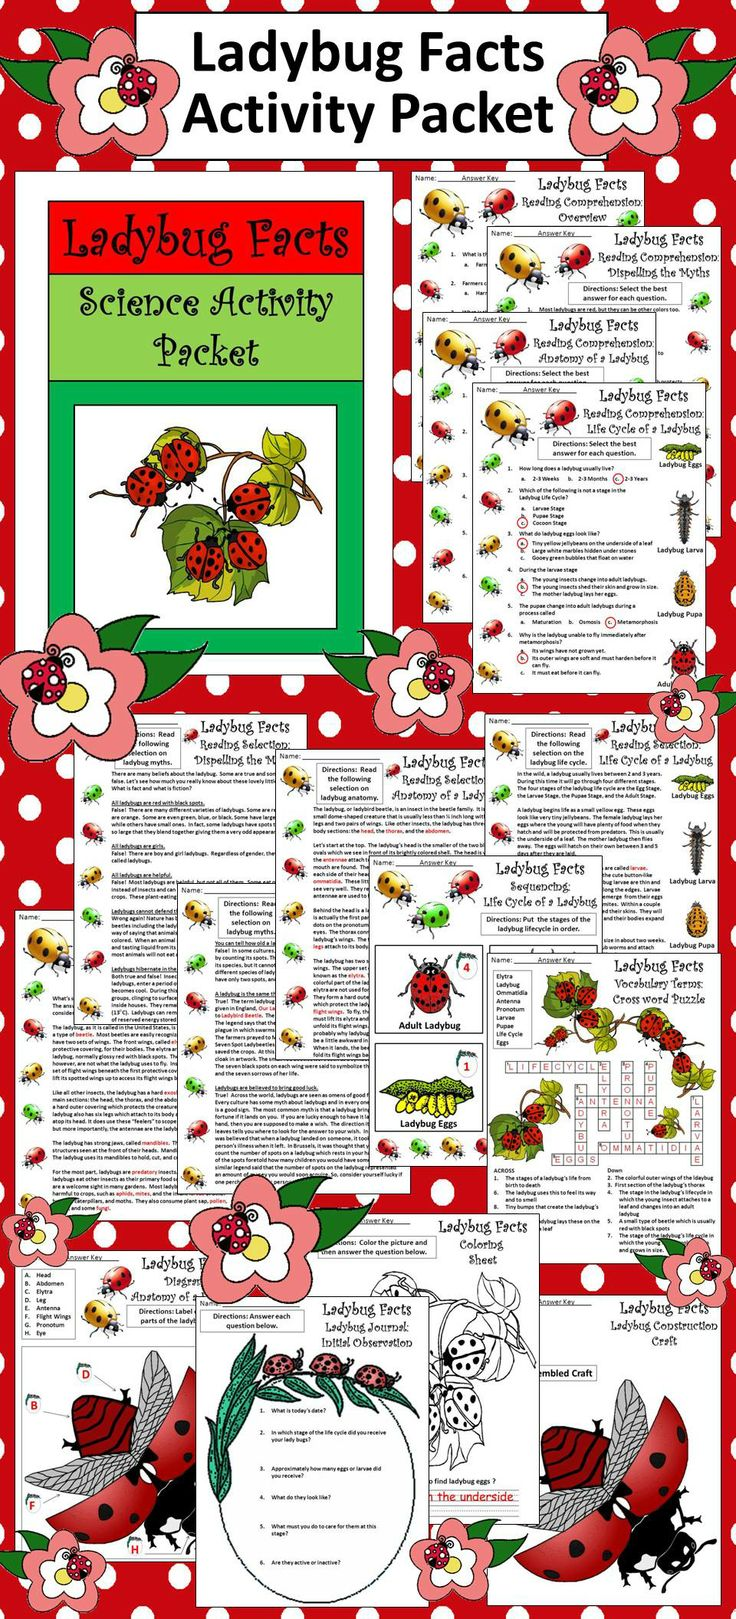 Ladybug Facts Activity Packet: This colorful activity packet explores one of the most beloved insects on Earth, the Ladybug or Ladybird Beetle.